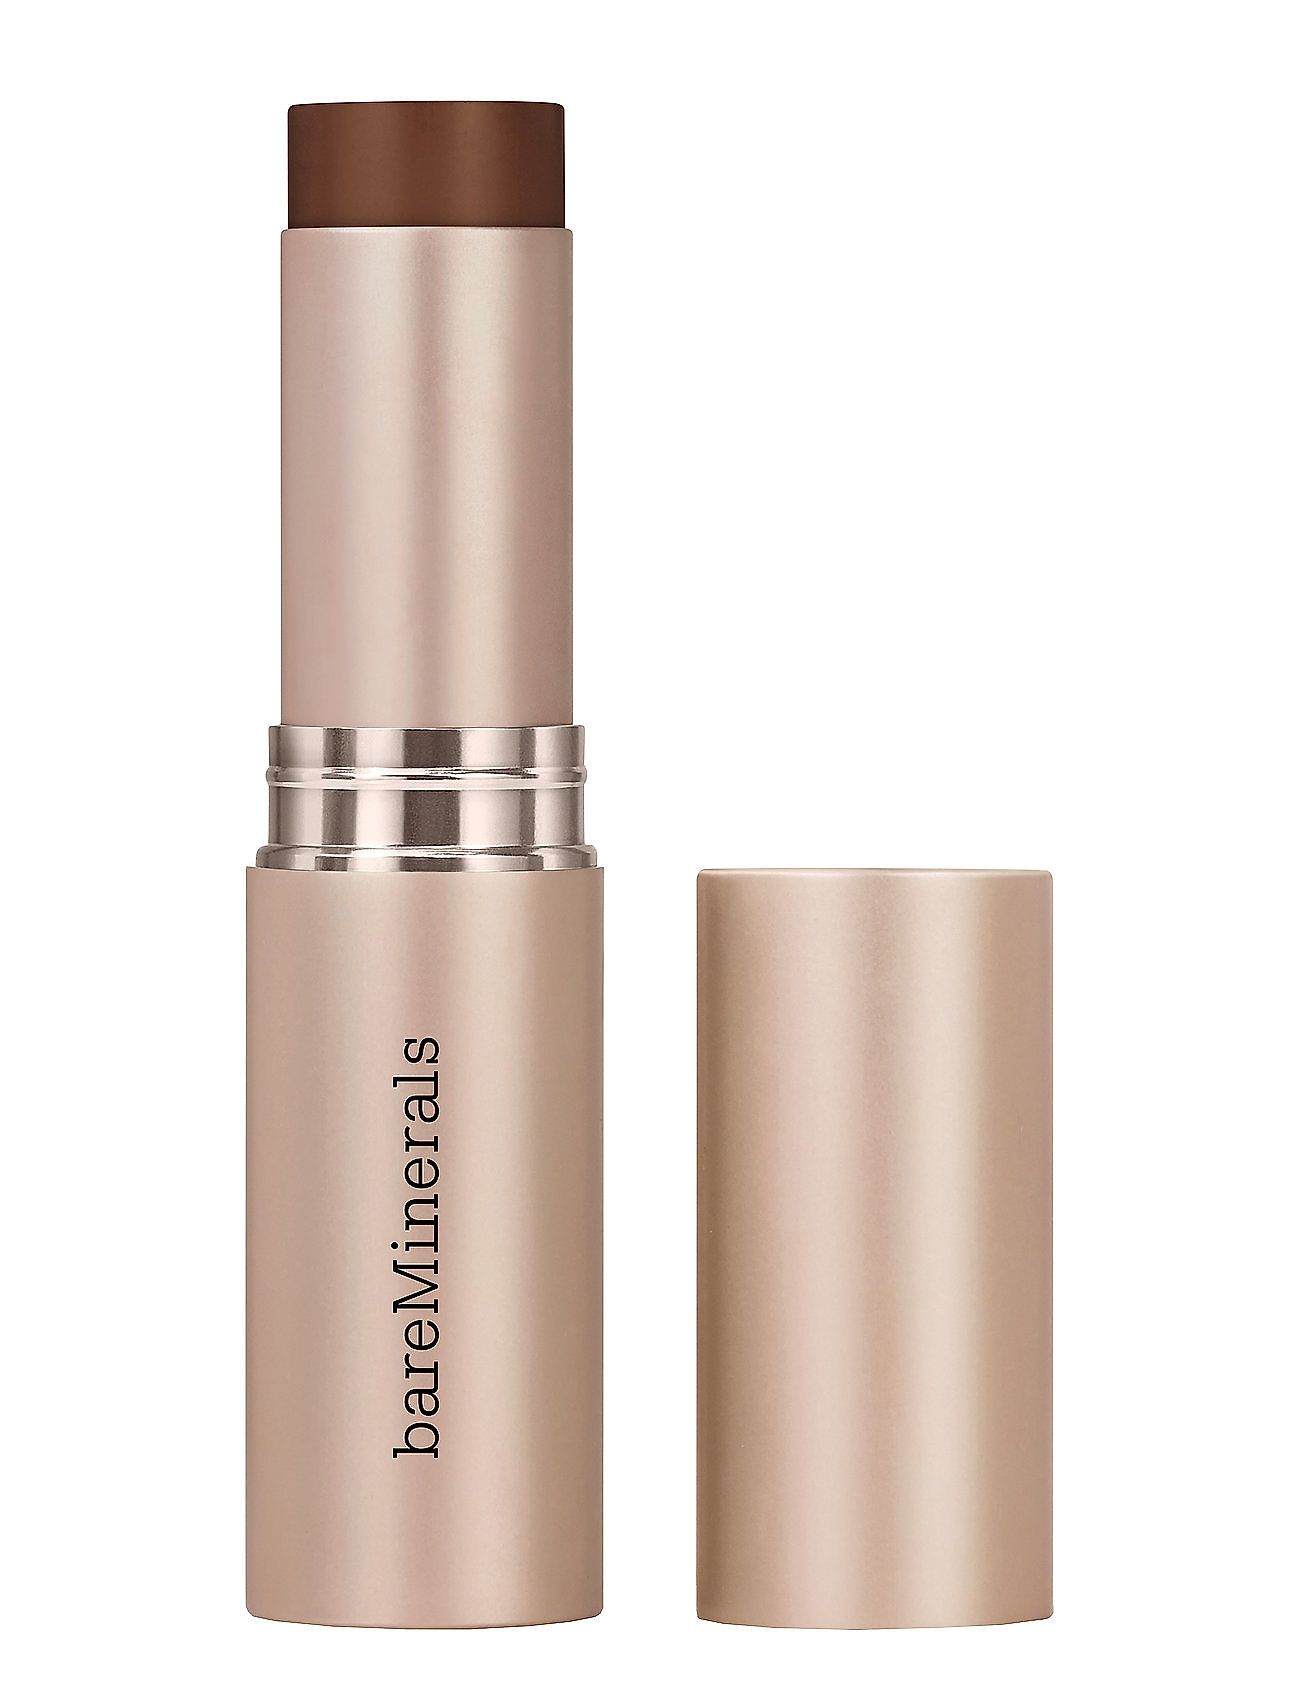 Image of Complexion Rescue Hydrating Foundation Stick Spf 25 Foundation Makeup BareMinerals (3250586919)